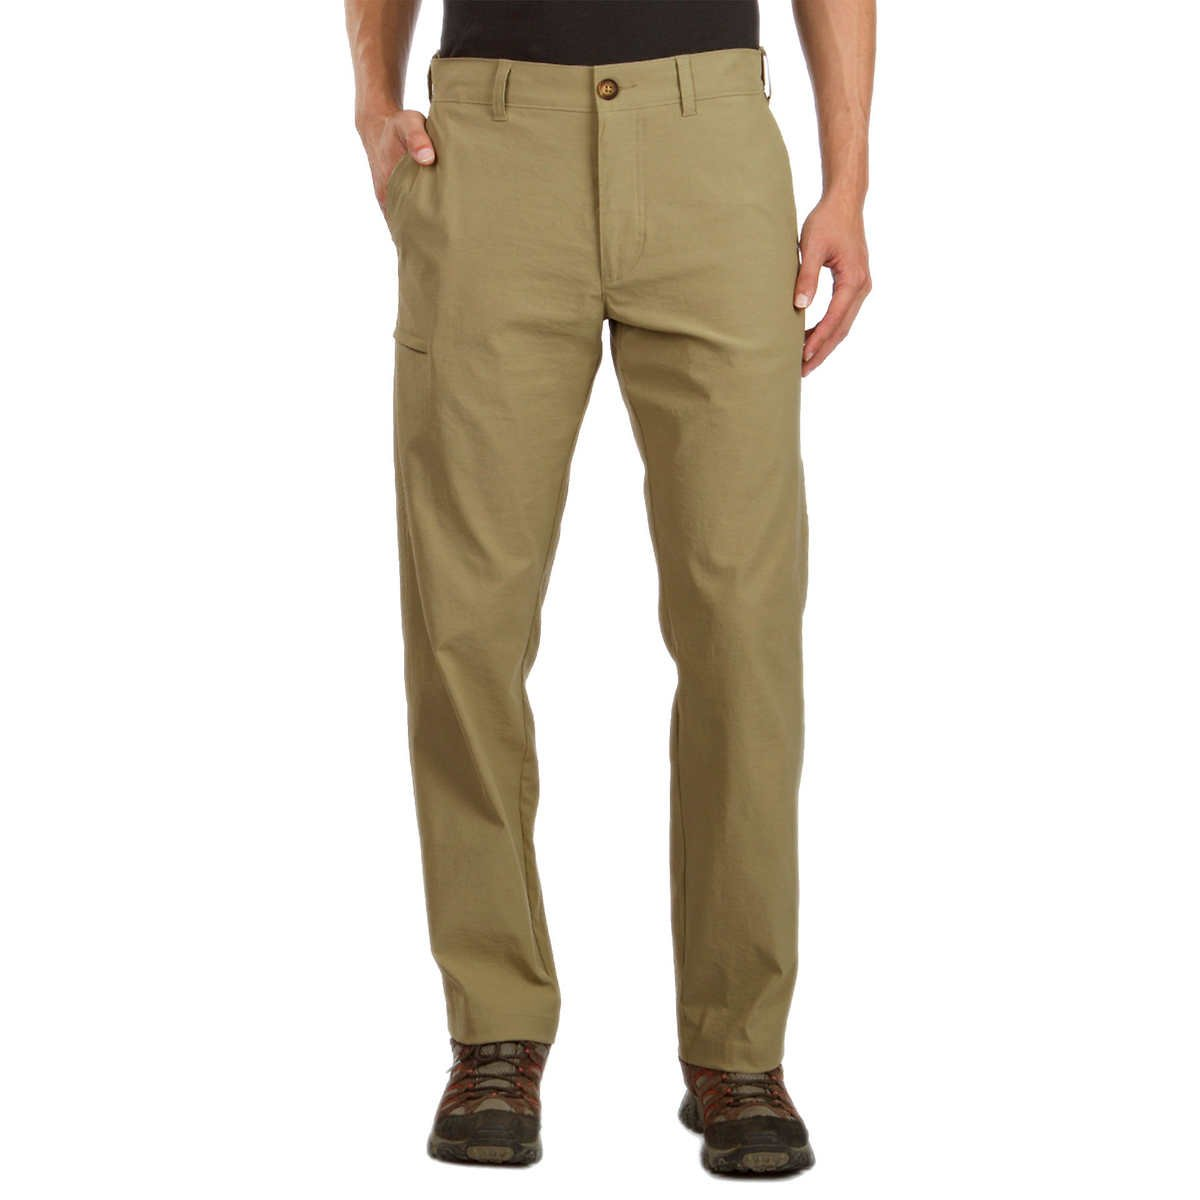 UB Tech by Union Bay Men's Classic Fit Comfort Waist Chino Pants